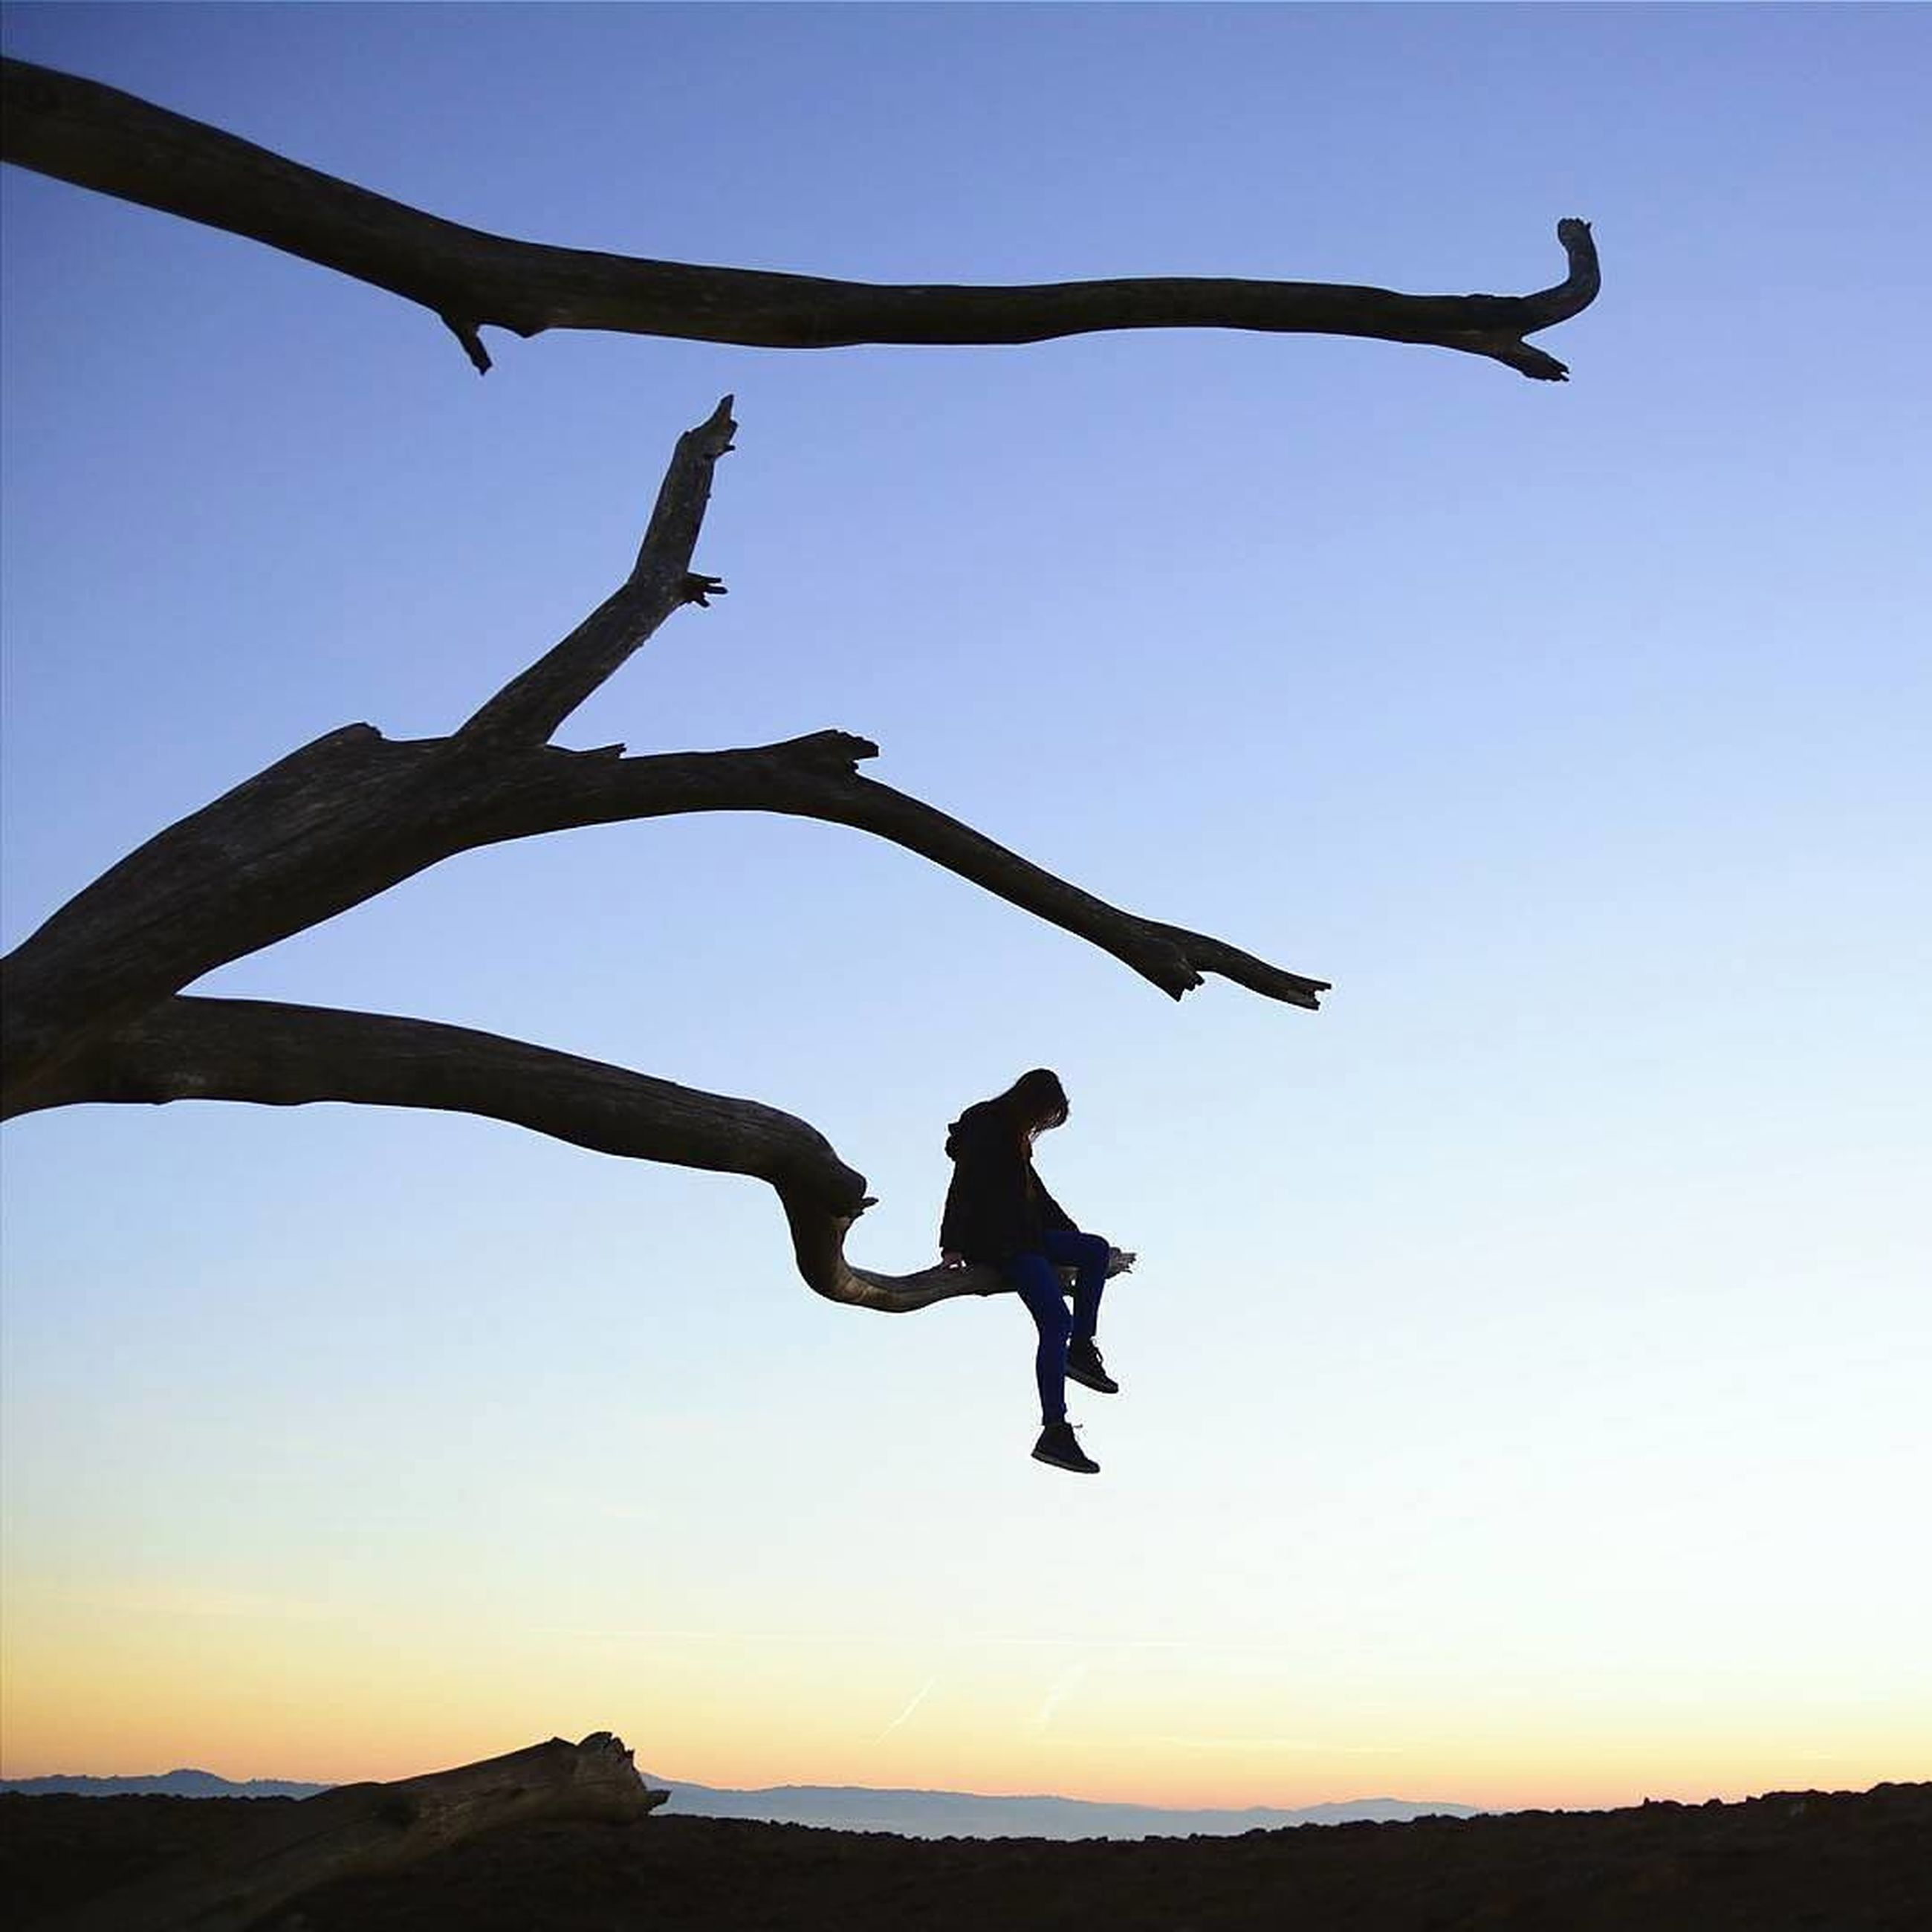 silhouette, mid-air, full length, leisure activity, clear sky, sunset, flying, lifestyles, jumping, sky, arms outstretched, nature, low angle view, enjoyment, freedom, tranquility, tranquil scene, men